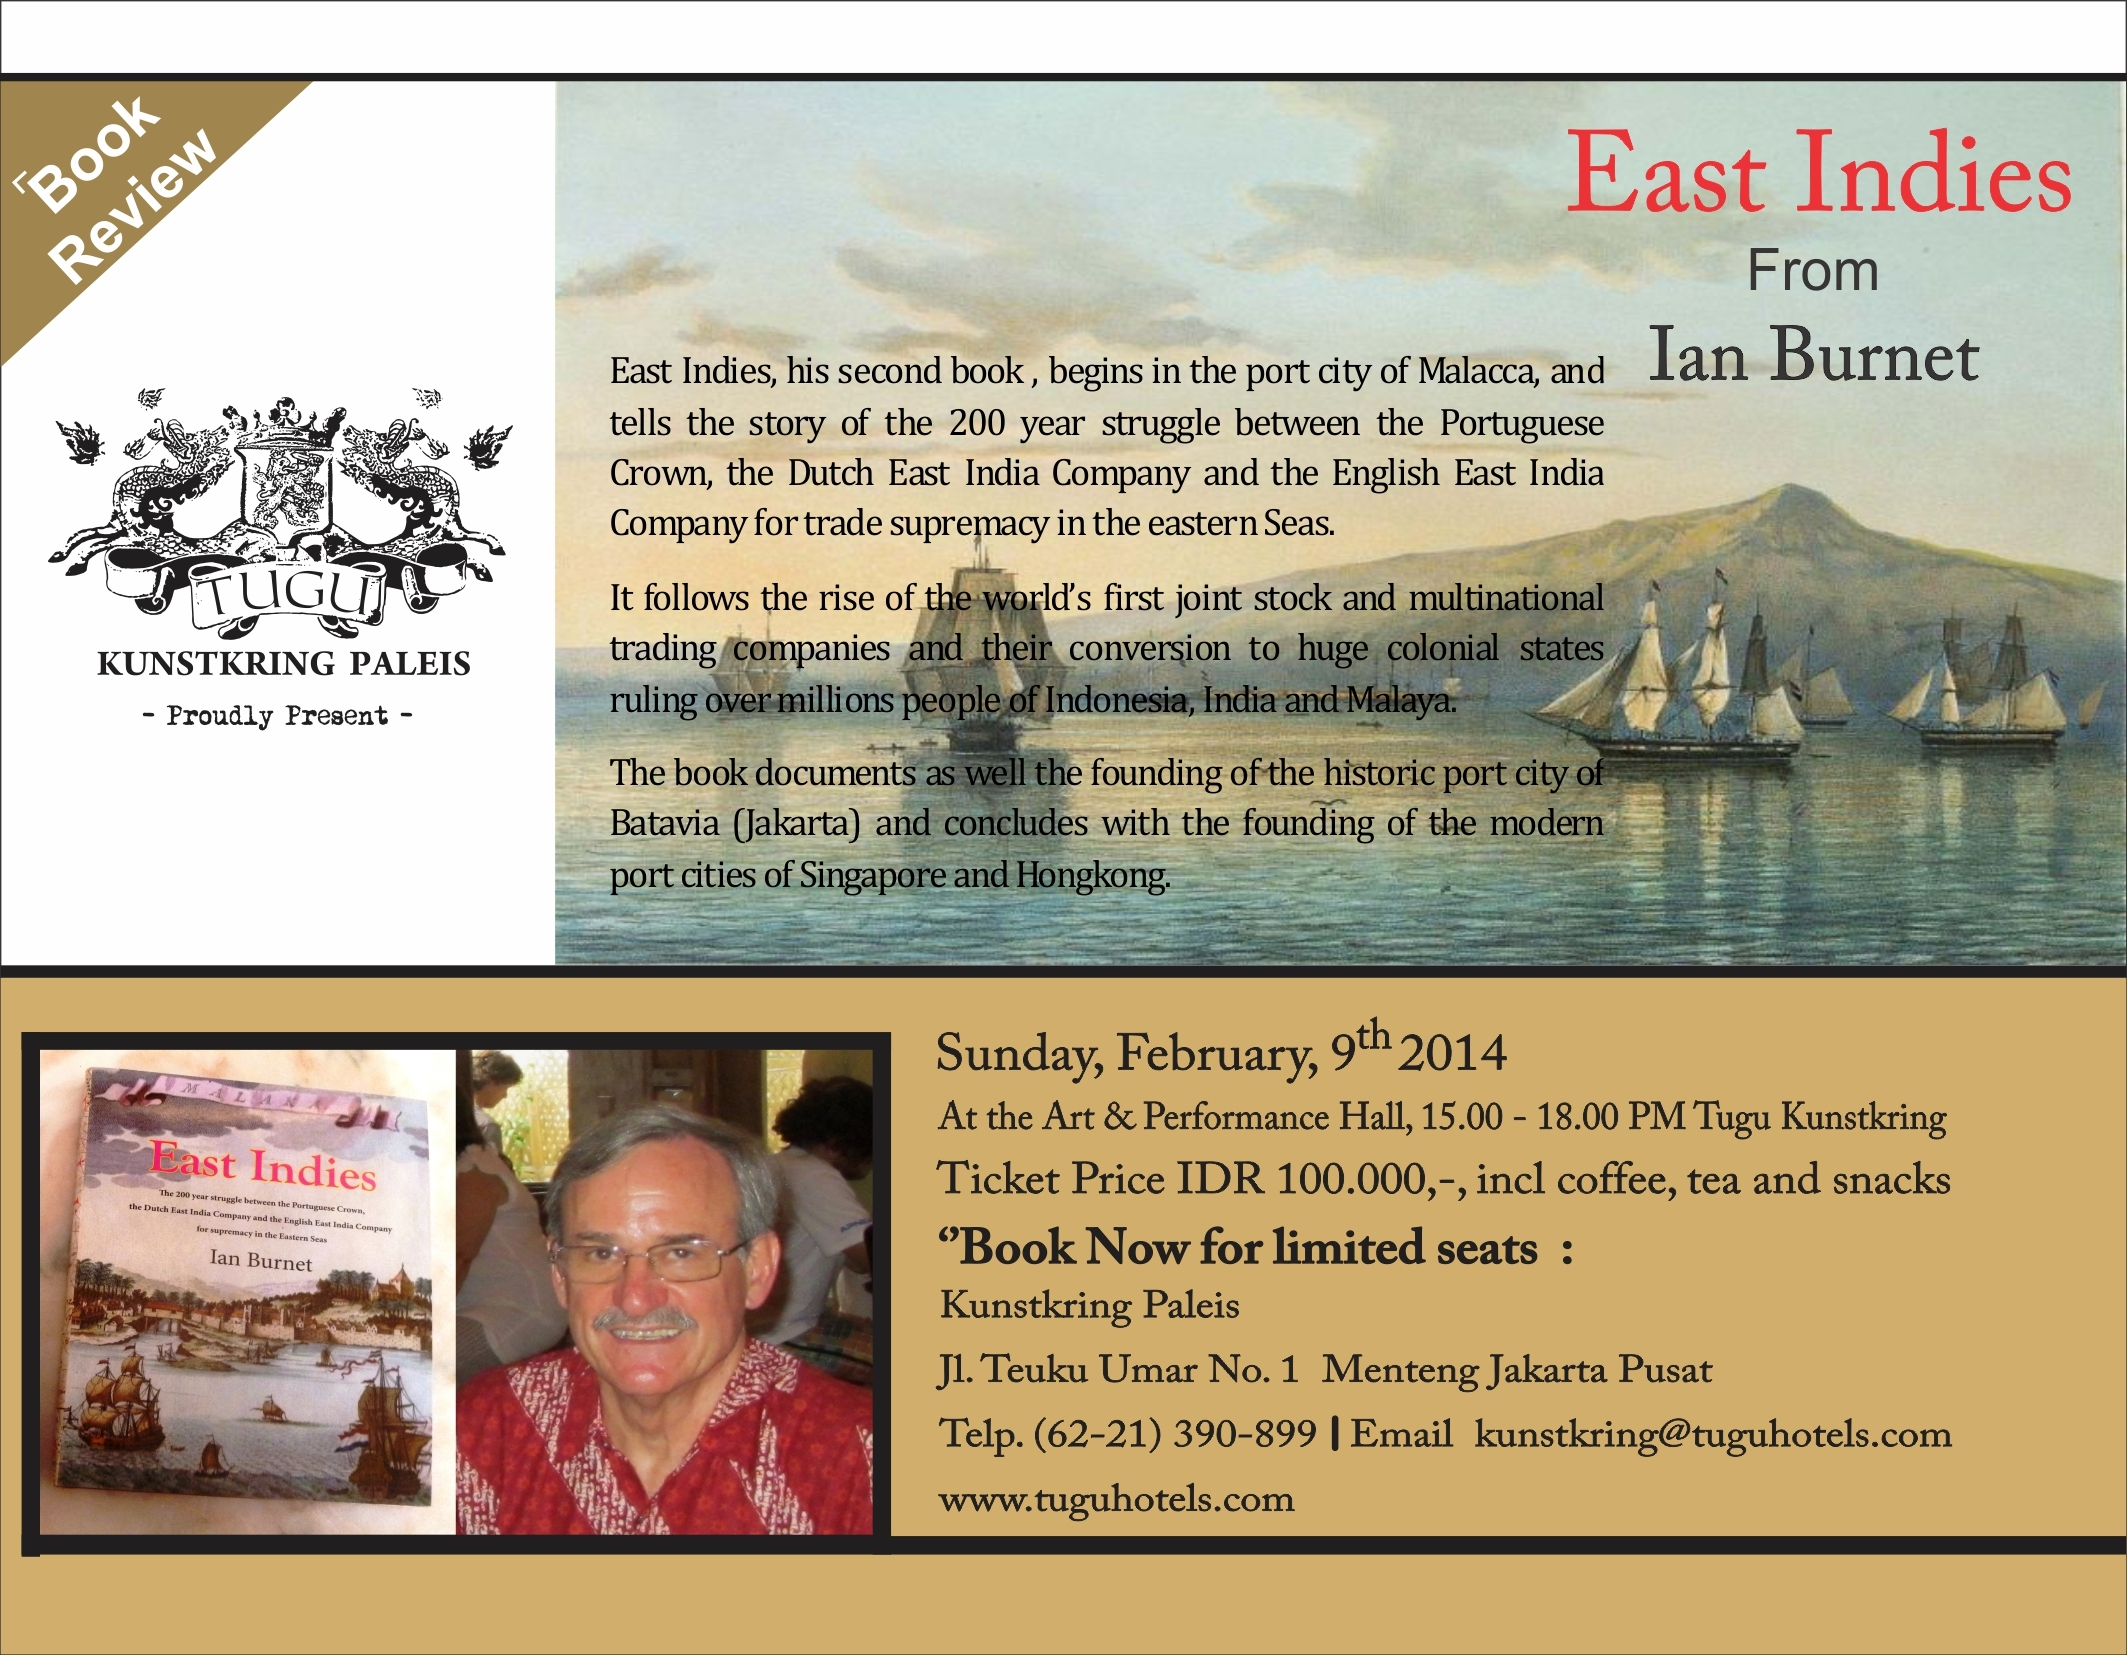 east indies book review from ian burnet at tugu kunstkring paleis